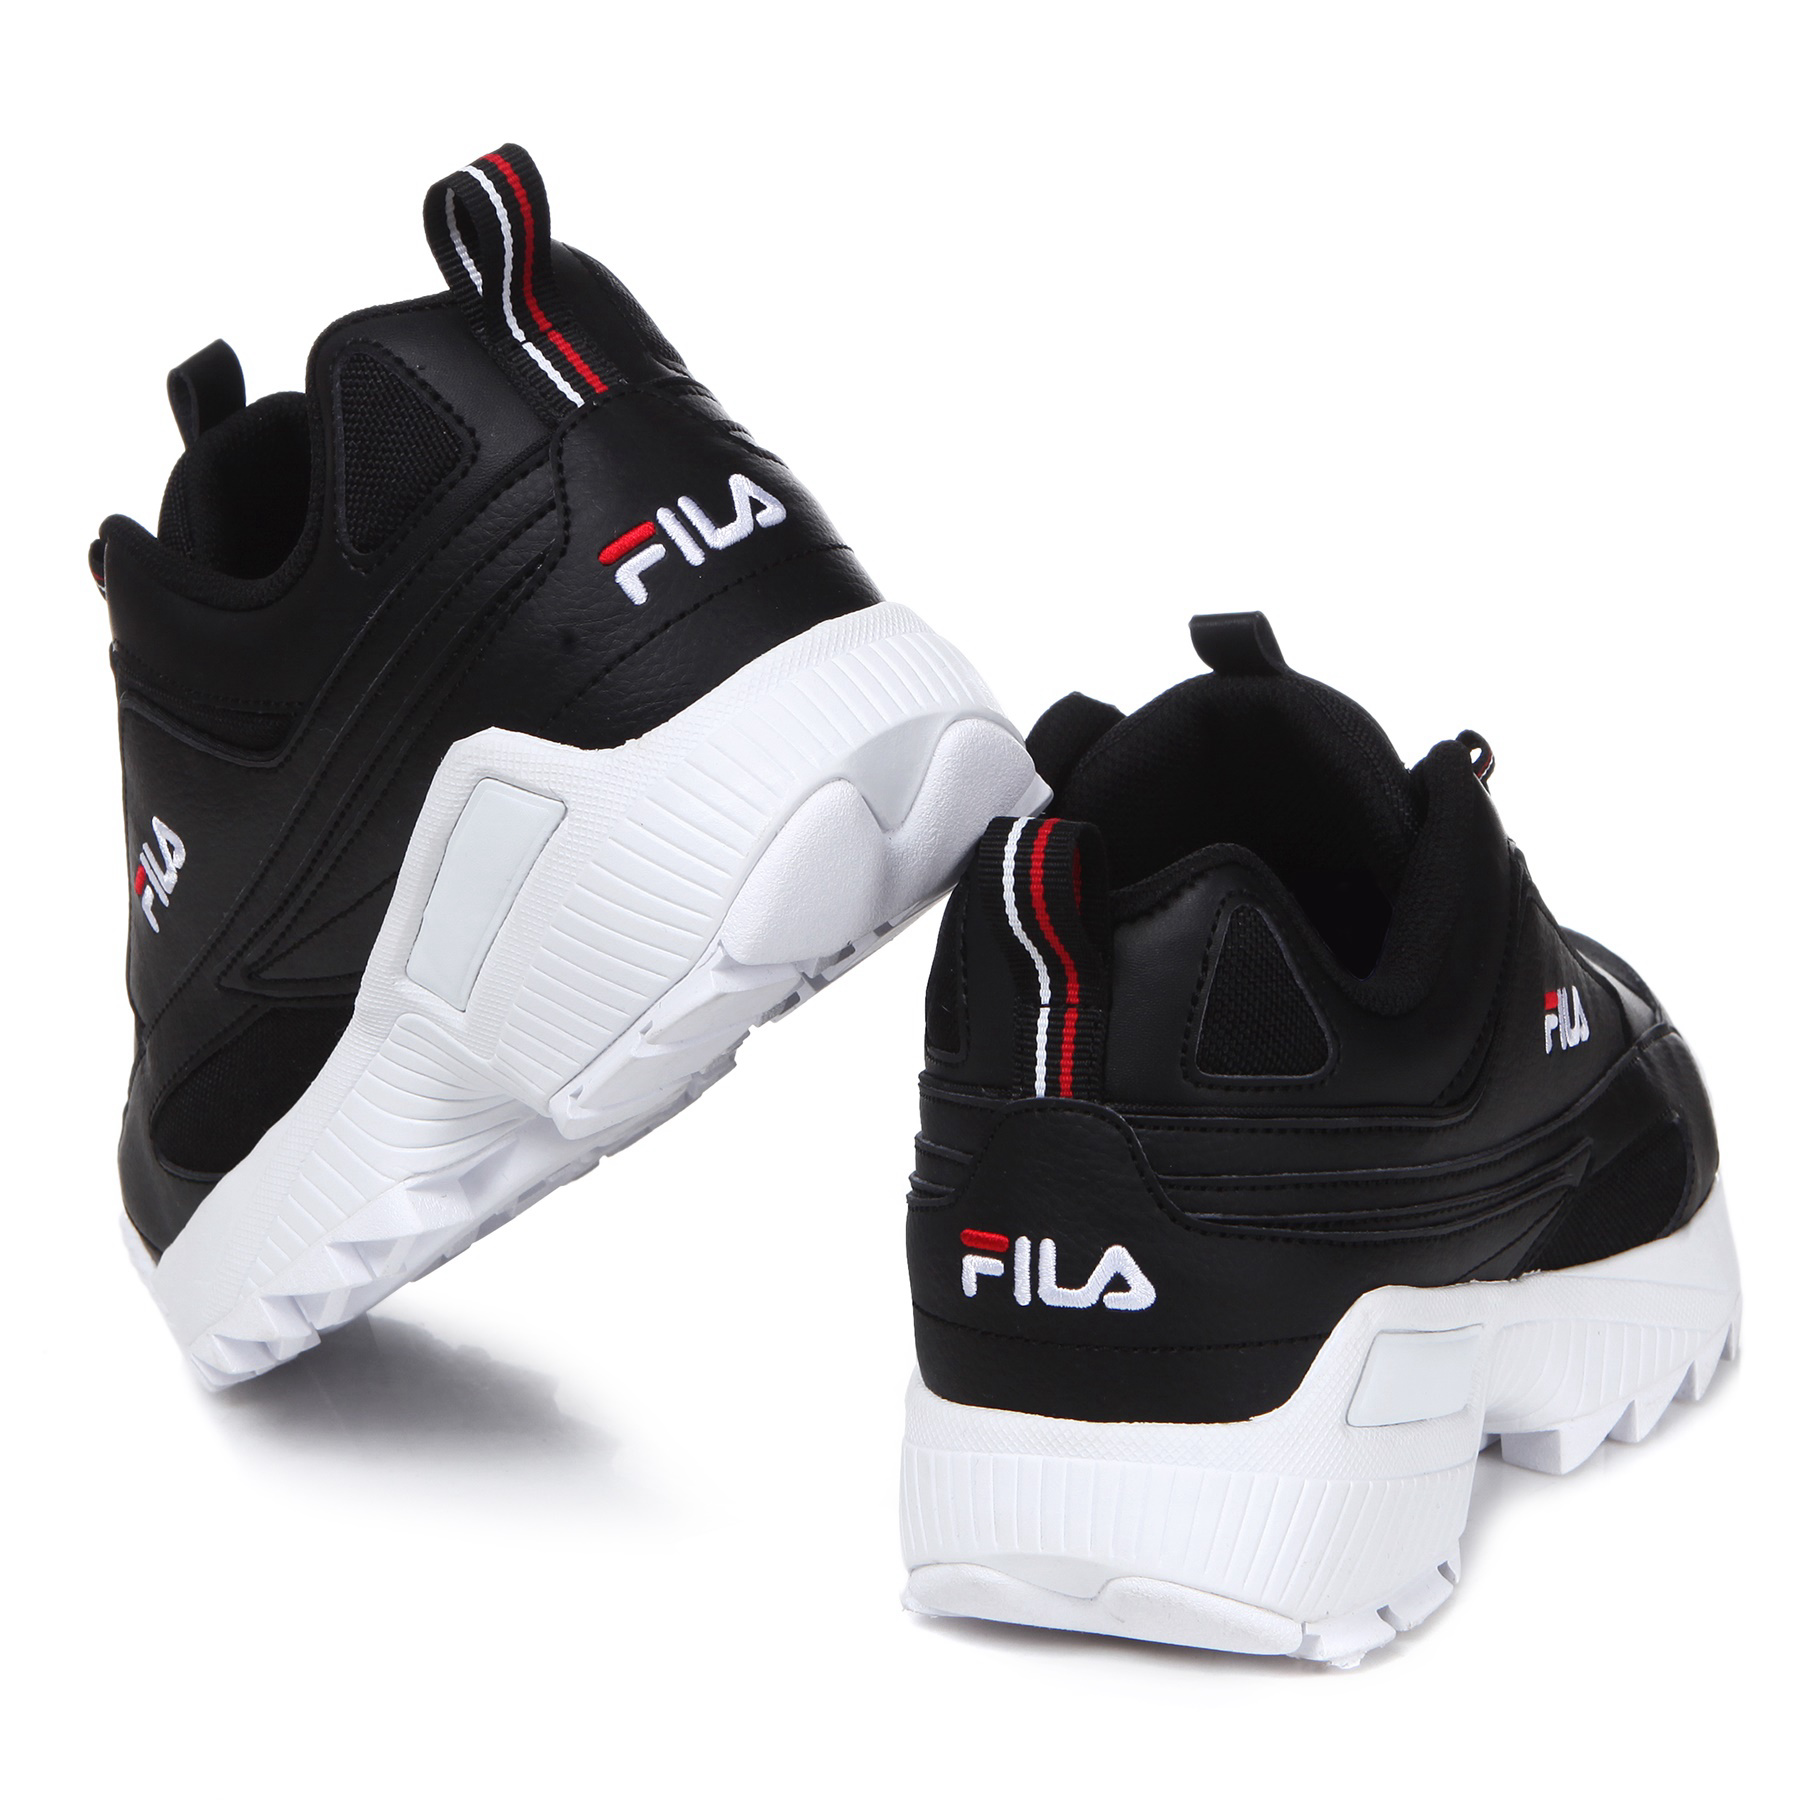 FILA UGLY SOOES 썸네일 이미지 6